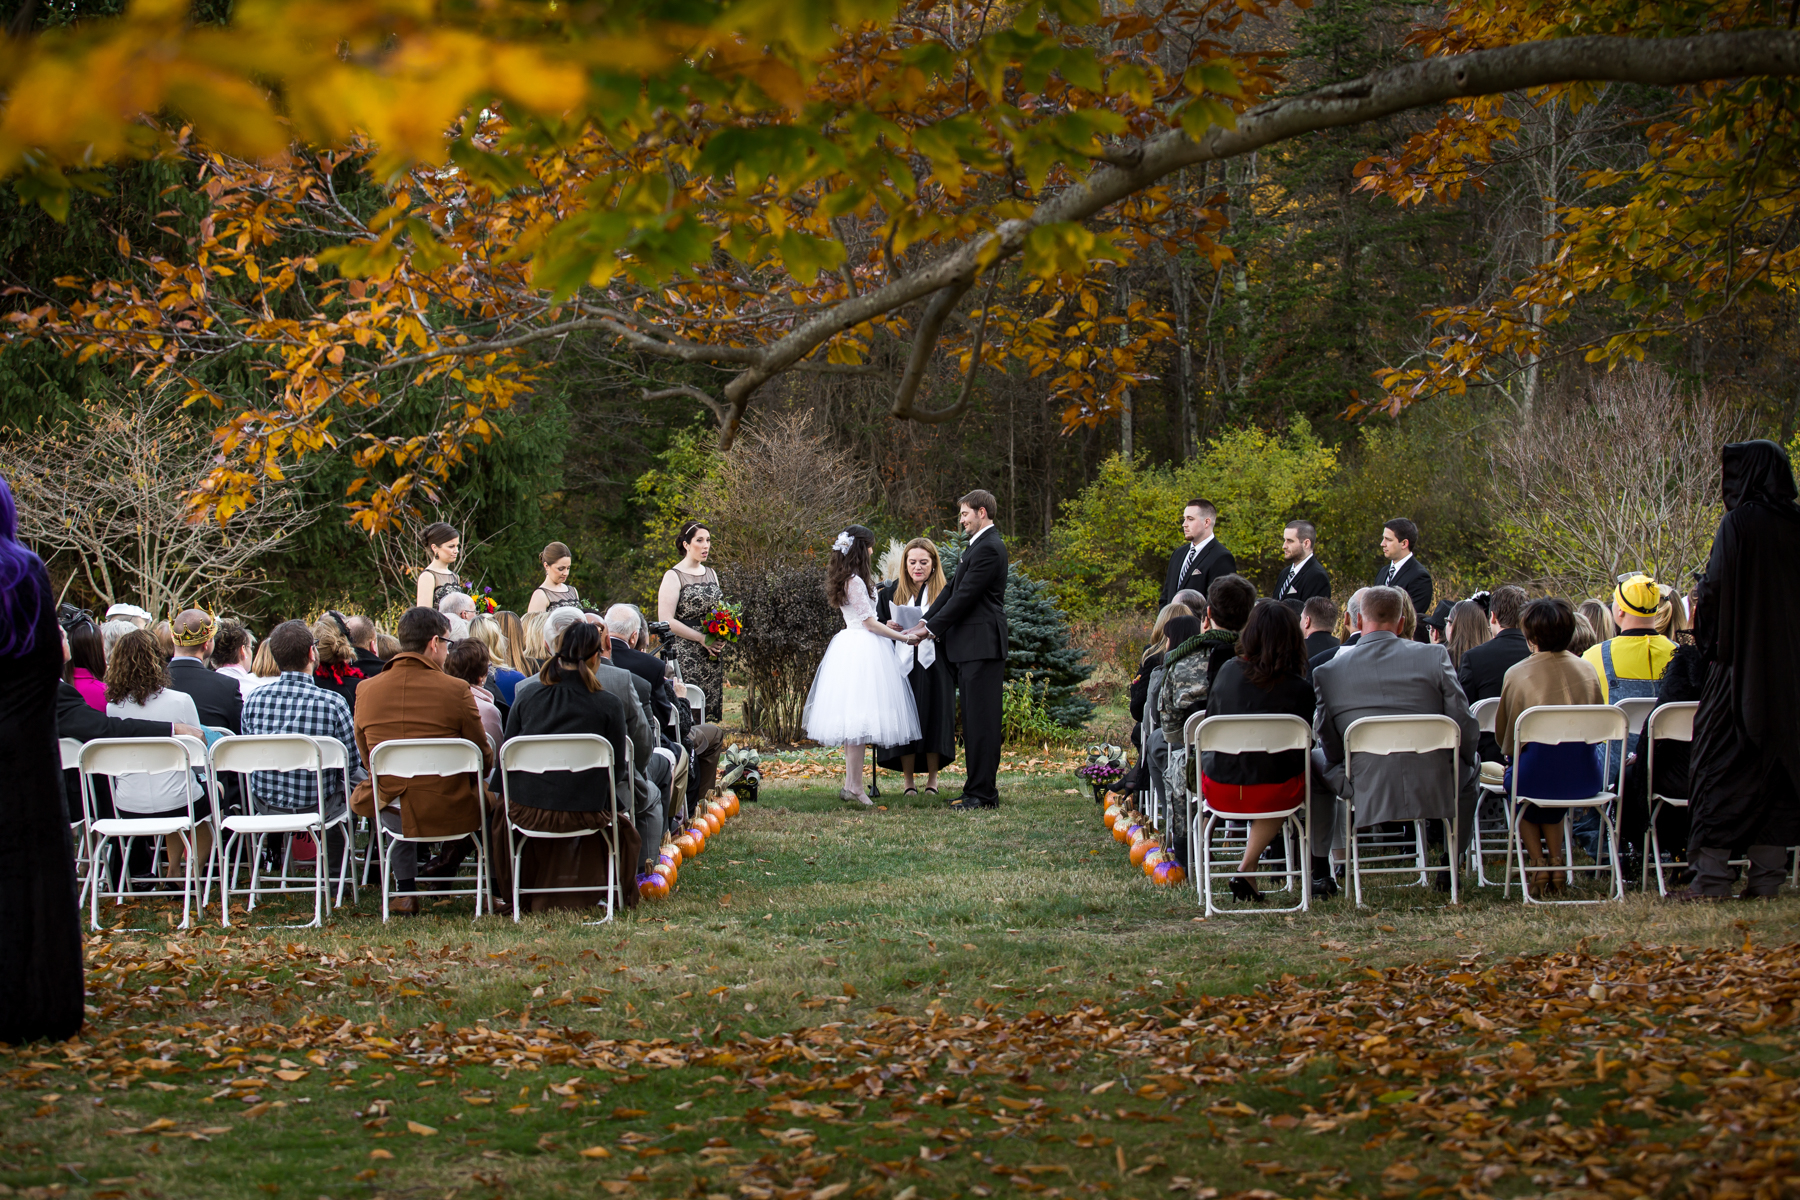 Gary Young Photograpy| pierce-house-wedding-mcinerney-44.jpg